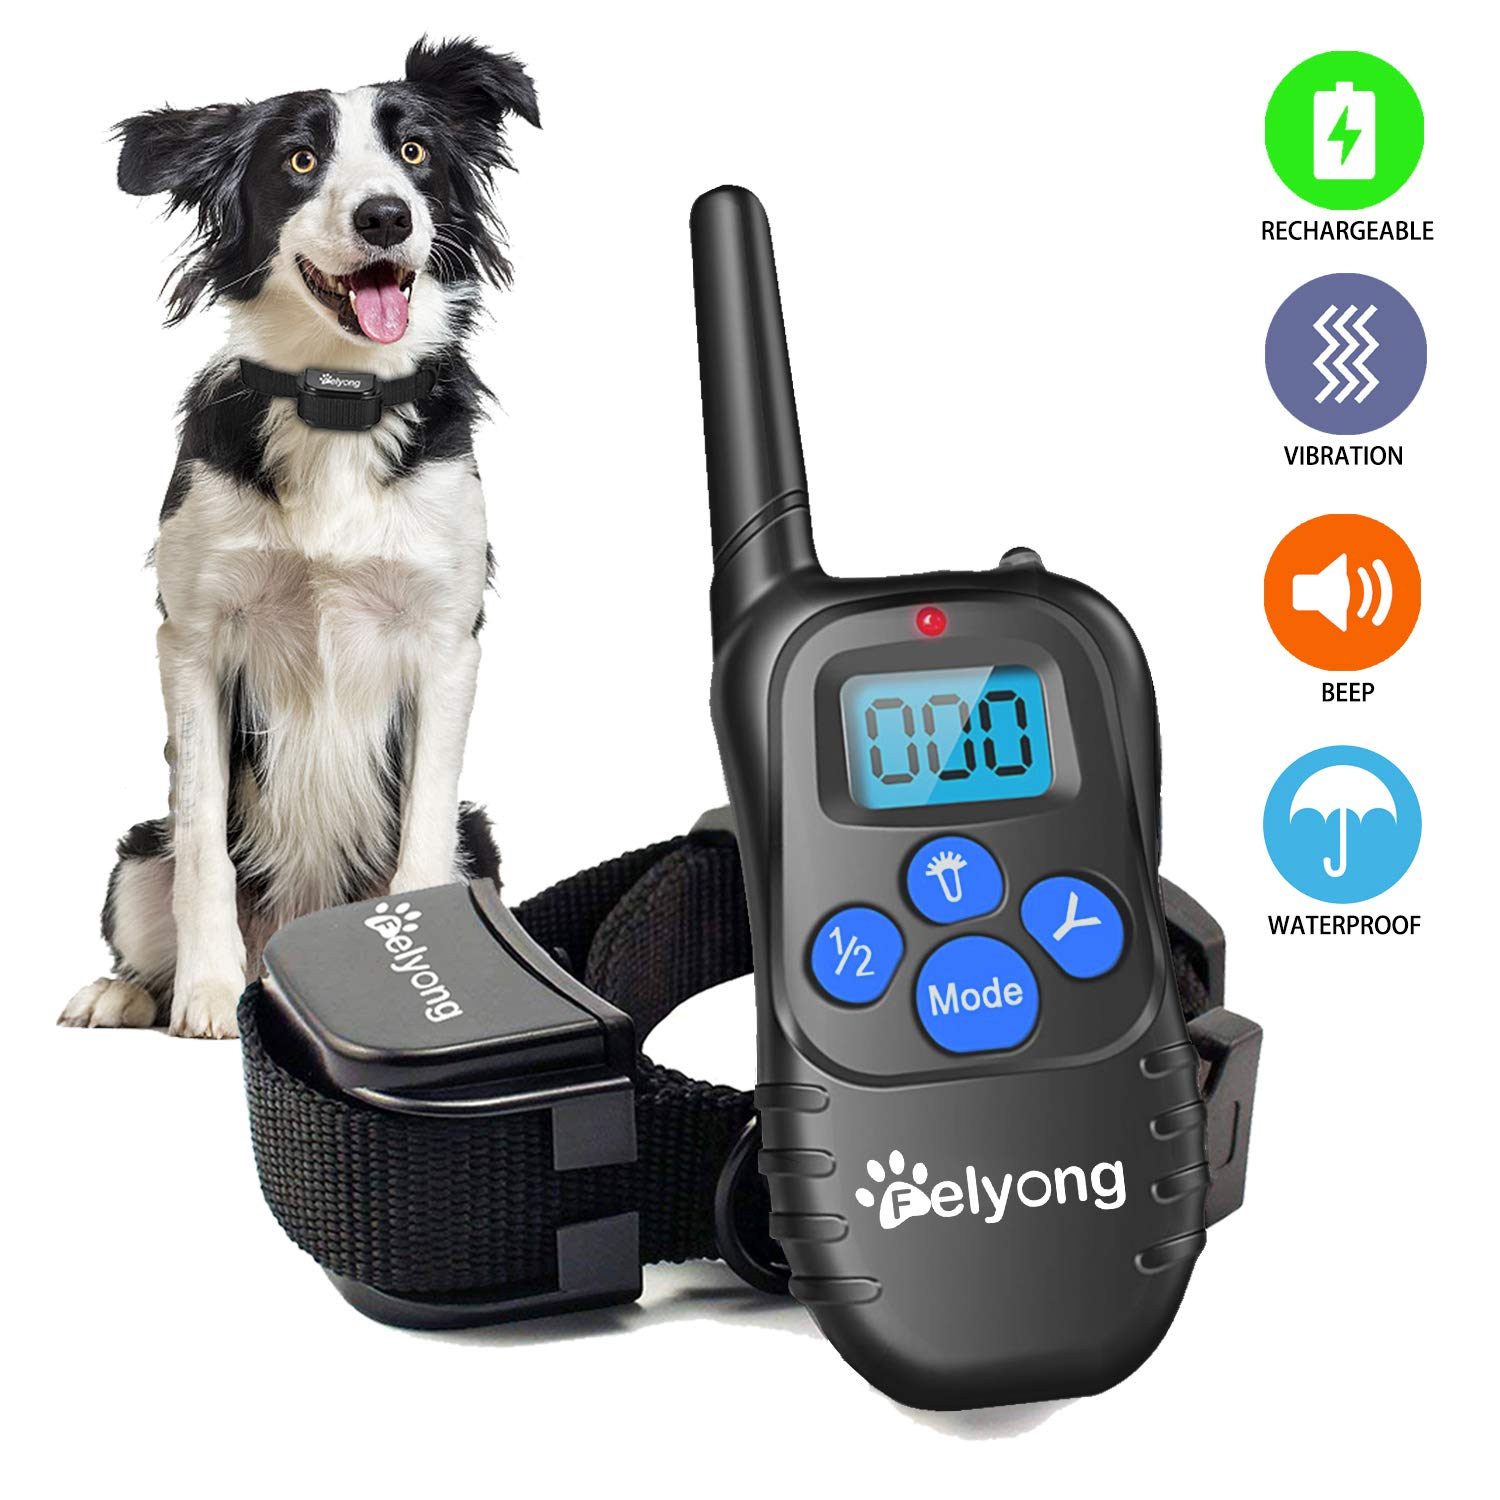 Felyong Dog Training Collar with Remote, Rechargeable Waterproof Dog Shock Collar with Beep Vibration Safety Shock Harmless Training Collars for Small Medium Large Dogs, 1000 Ft Range by Felyong